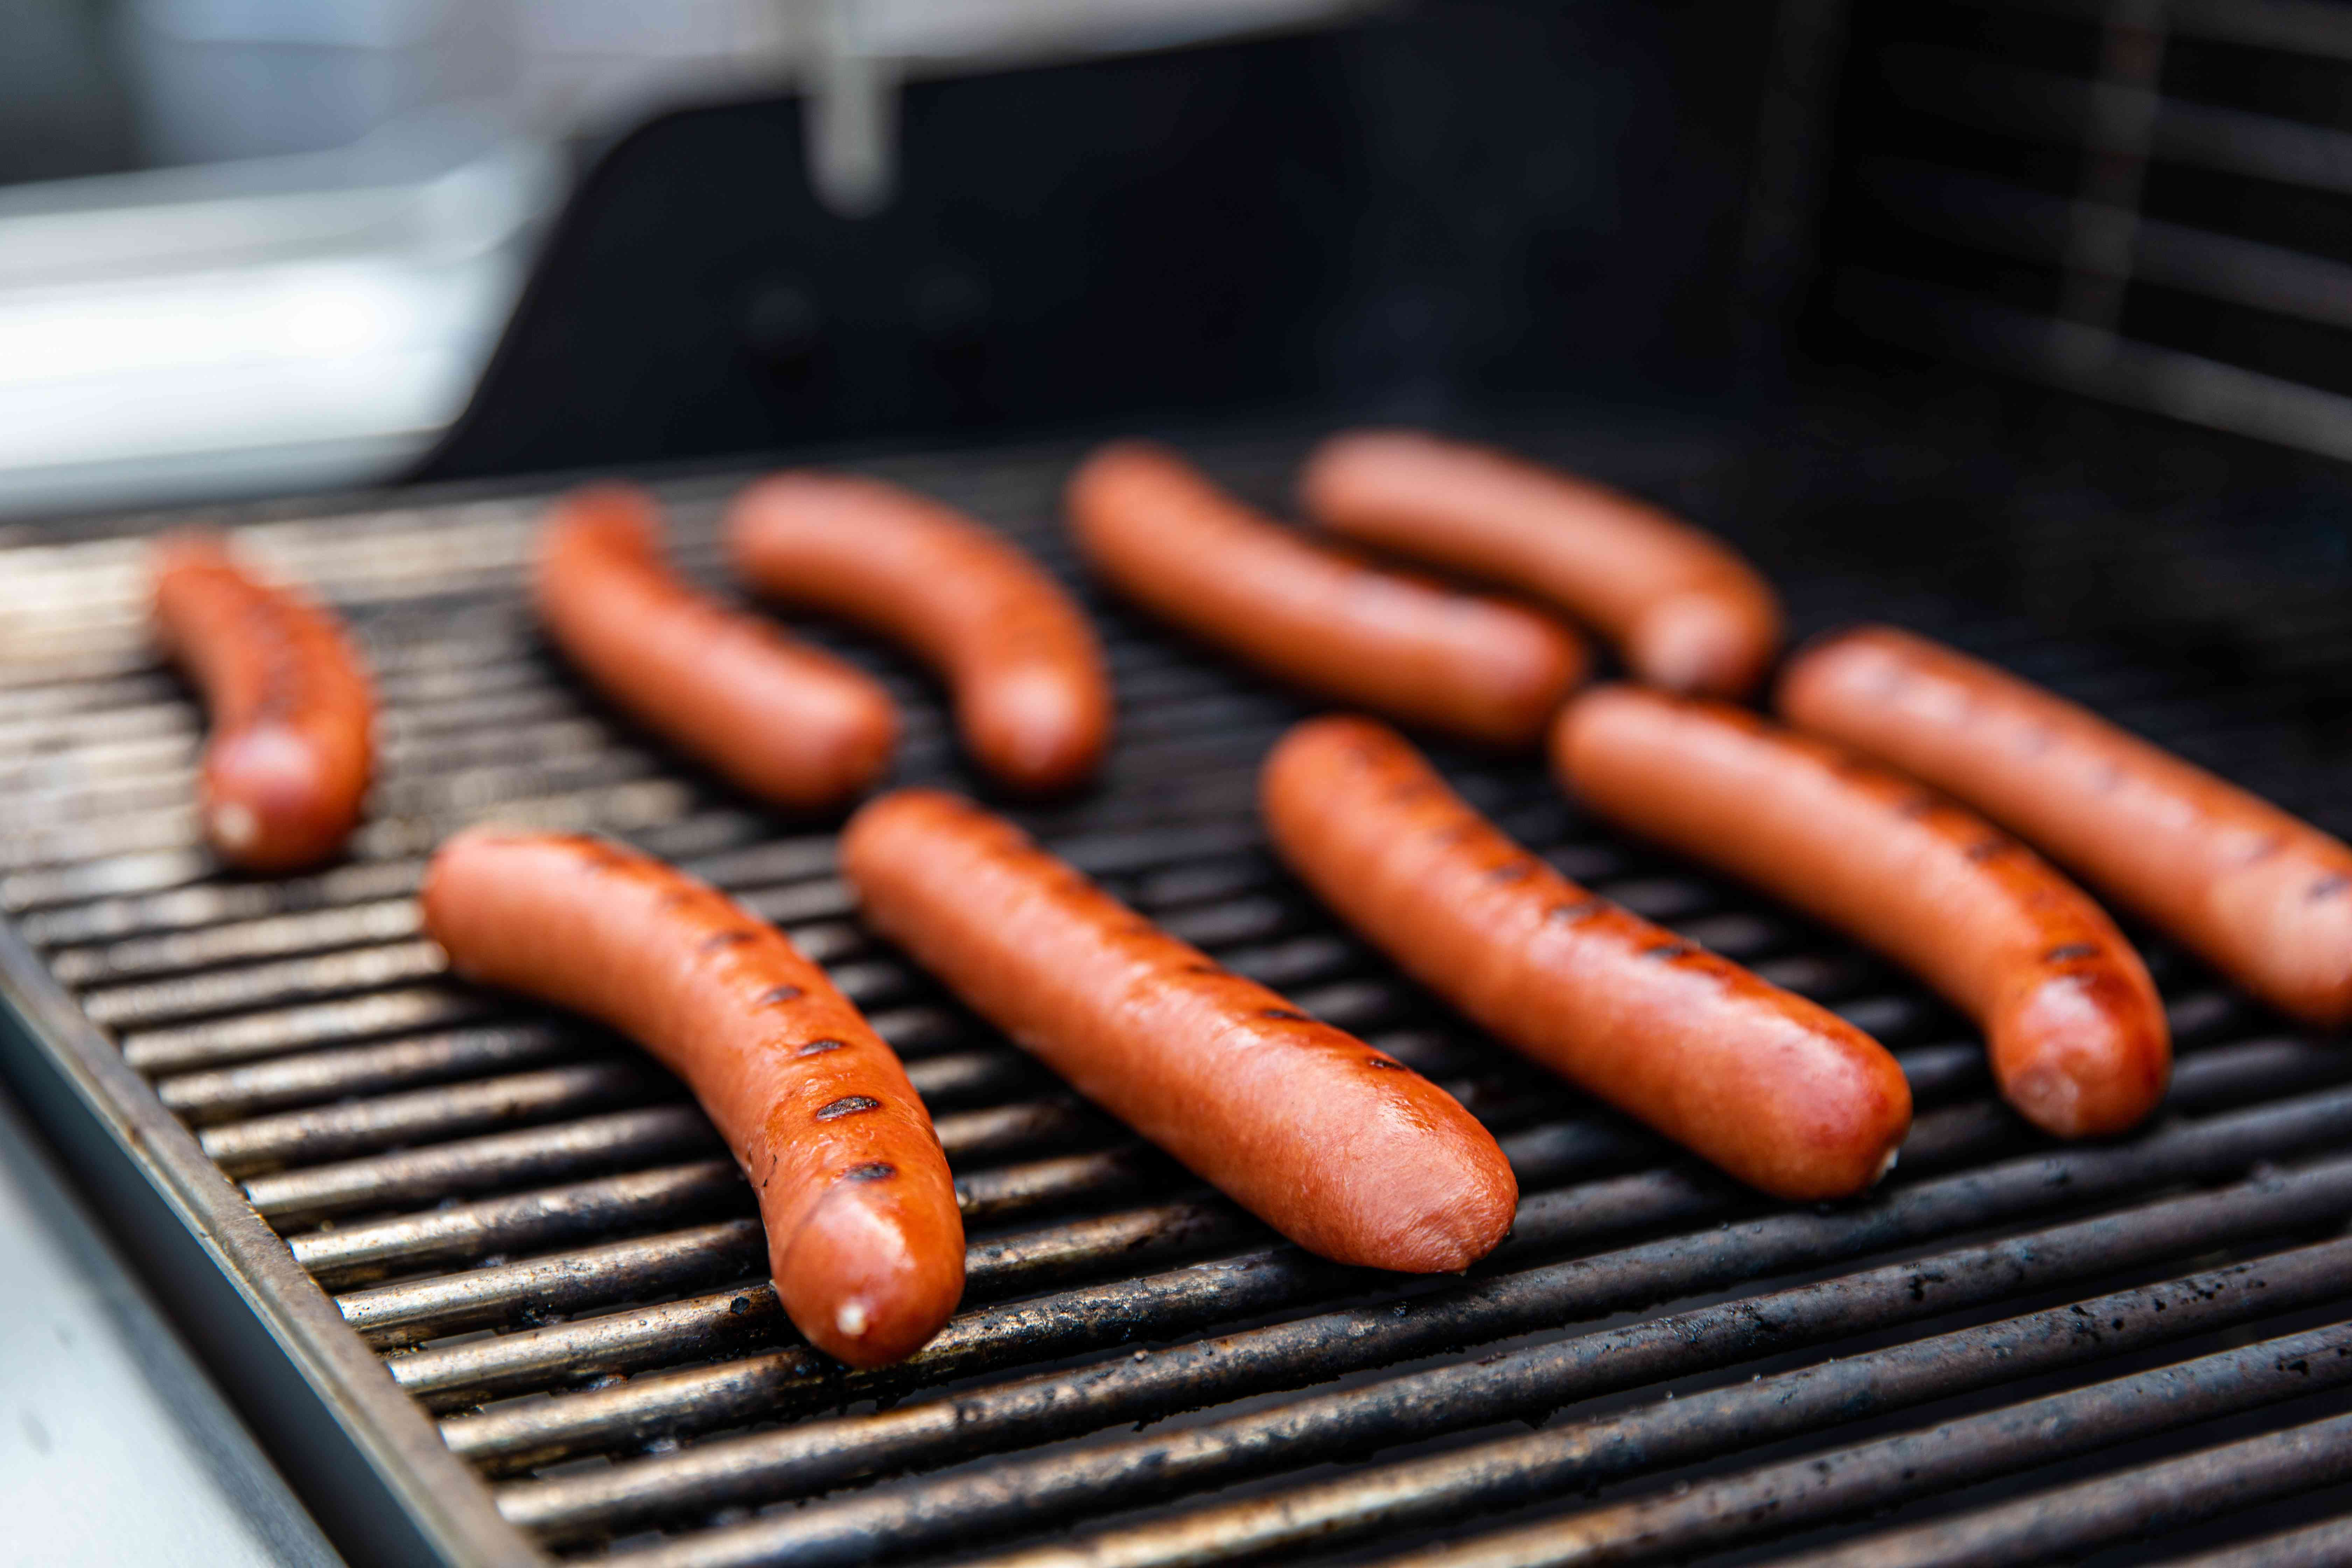 Chicago-style hot dogs on the grill.